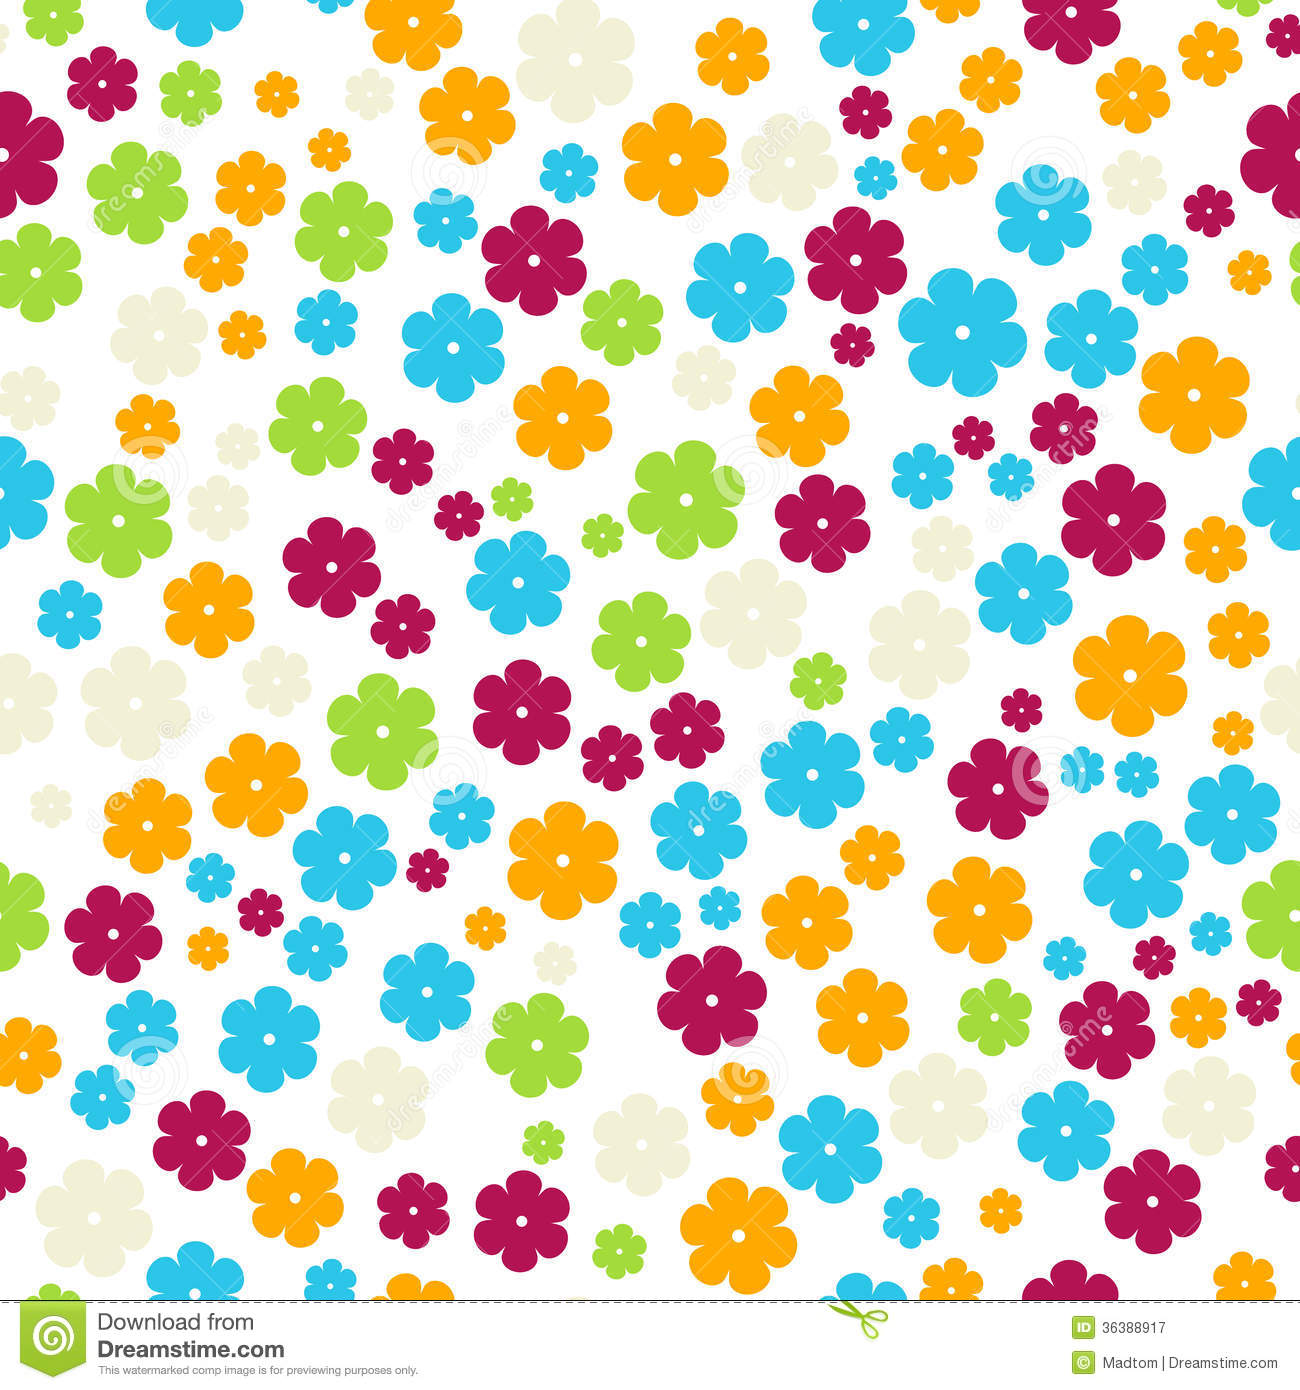 The Retro Flowers Background Royalty Free Stock